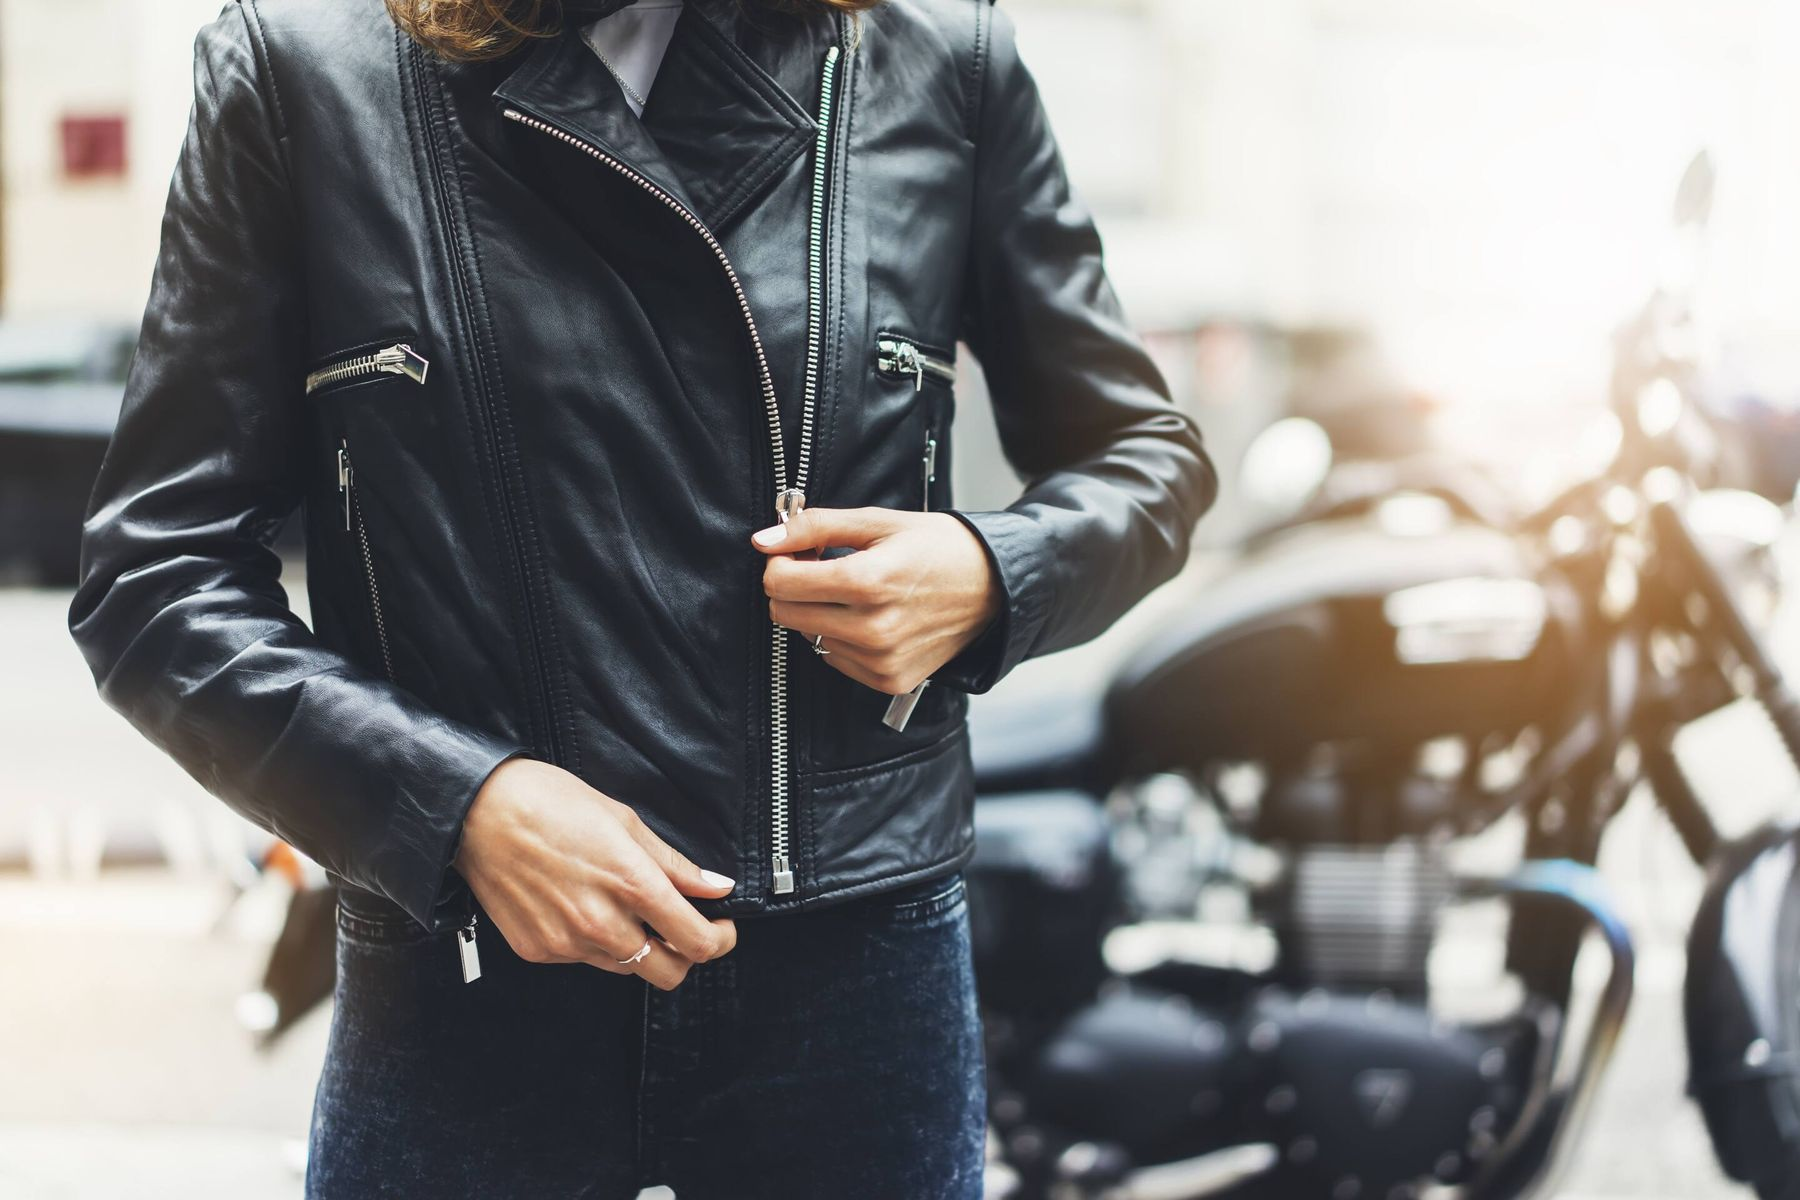 Tips on How to Maintain Your Leather Jacket | Cleanipedia